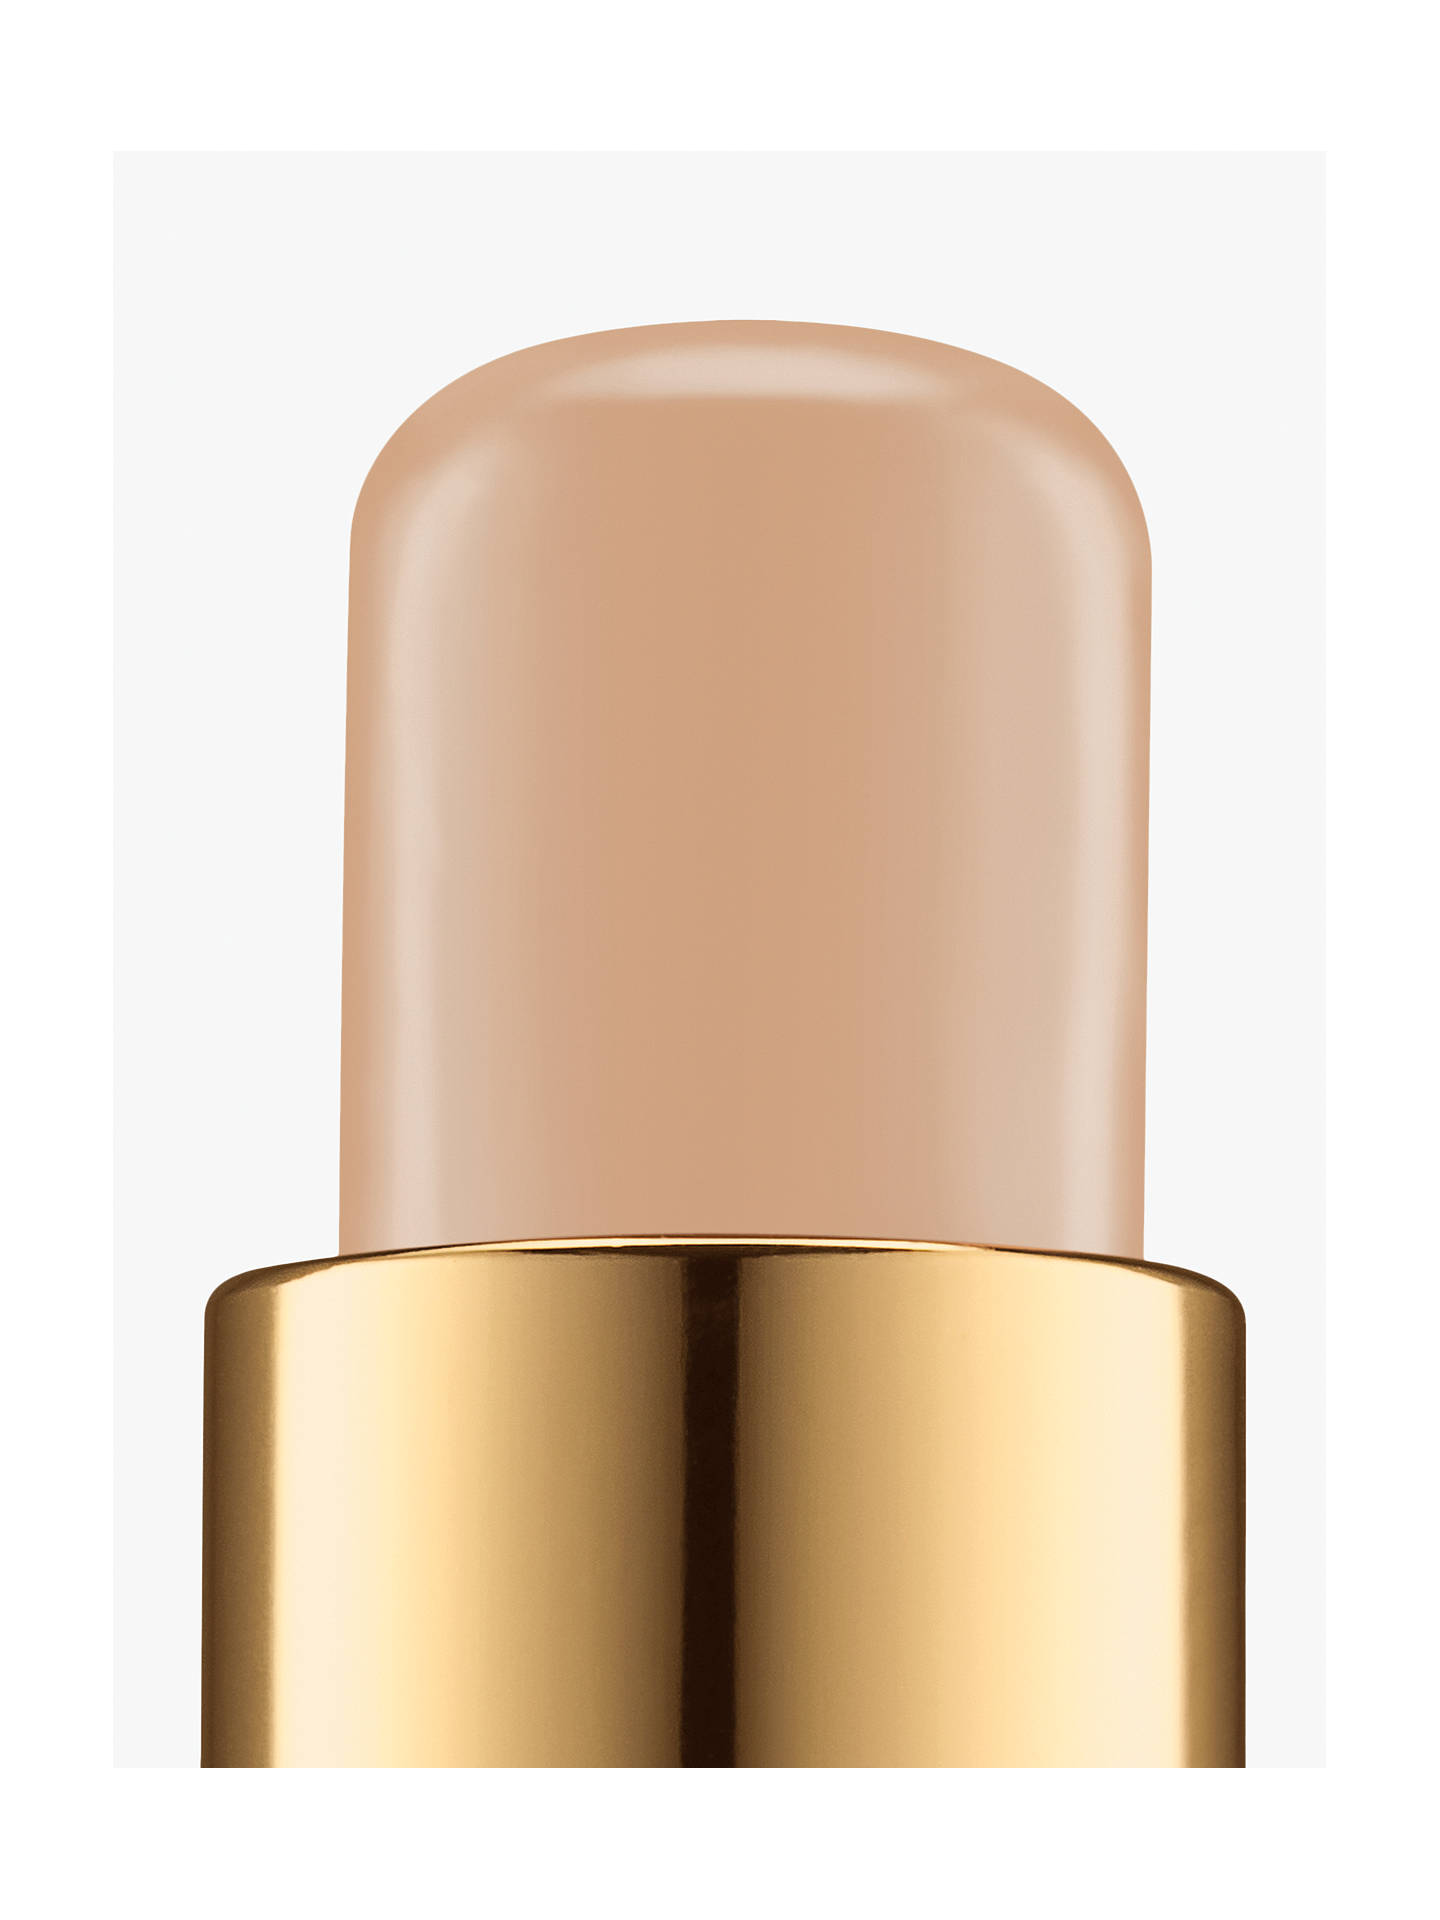 BuyLancôme Teint Idole Ultra Stick Foundation, 006 Beige Ocre Online at johnlewis.com